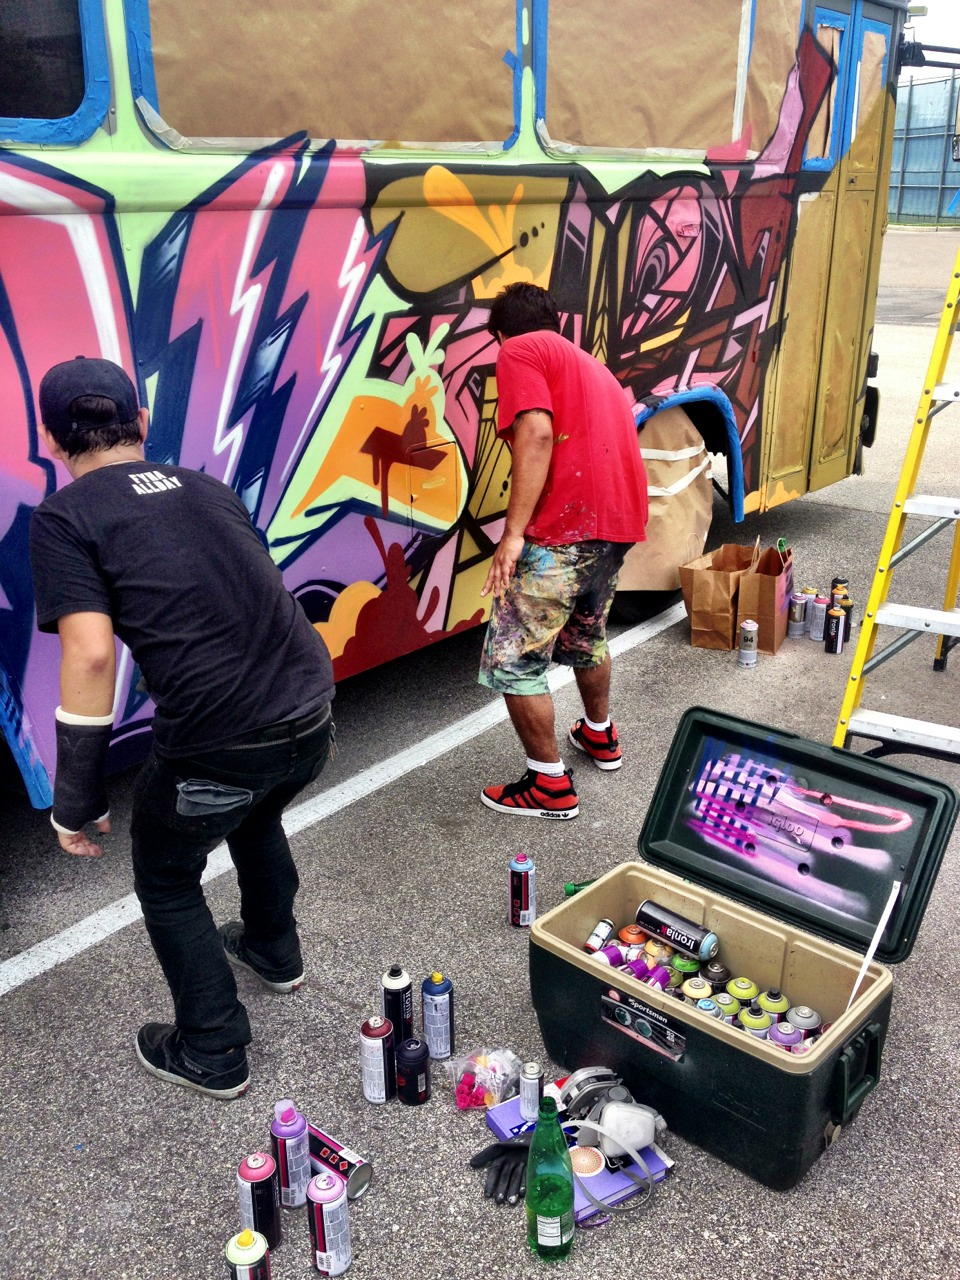 painting the cargo space artists colony bus